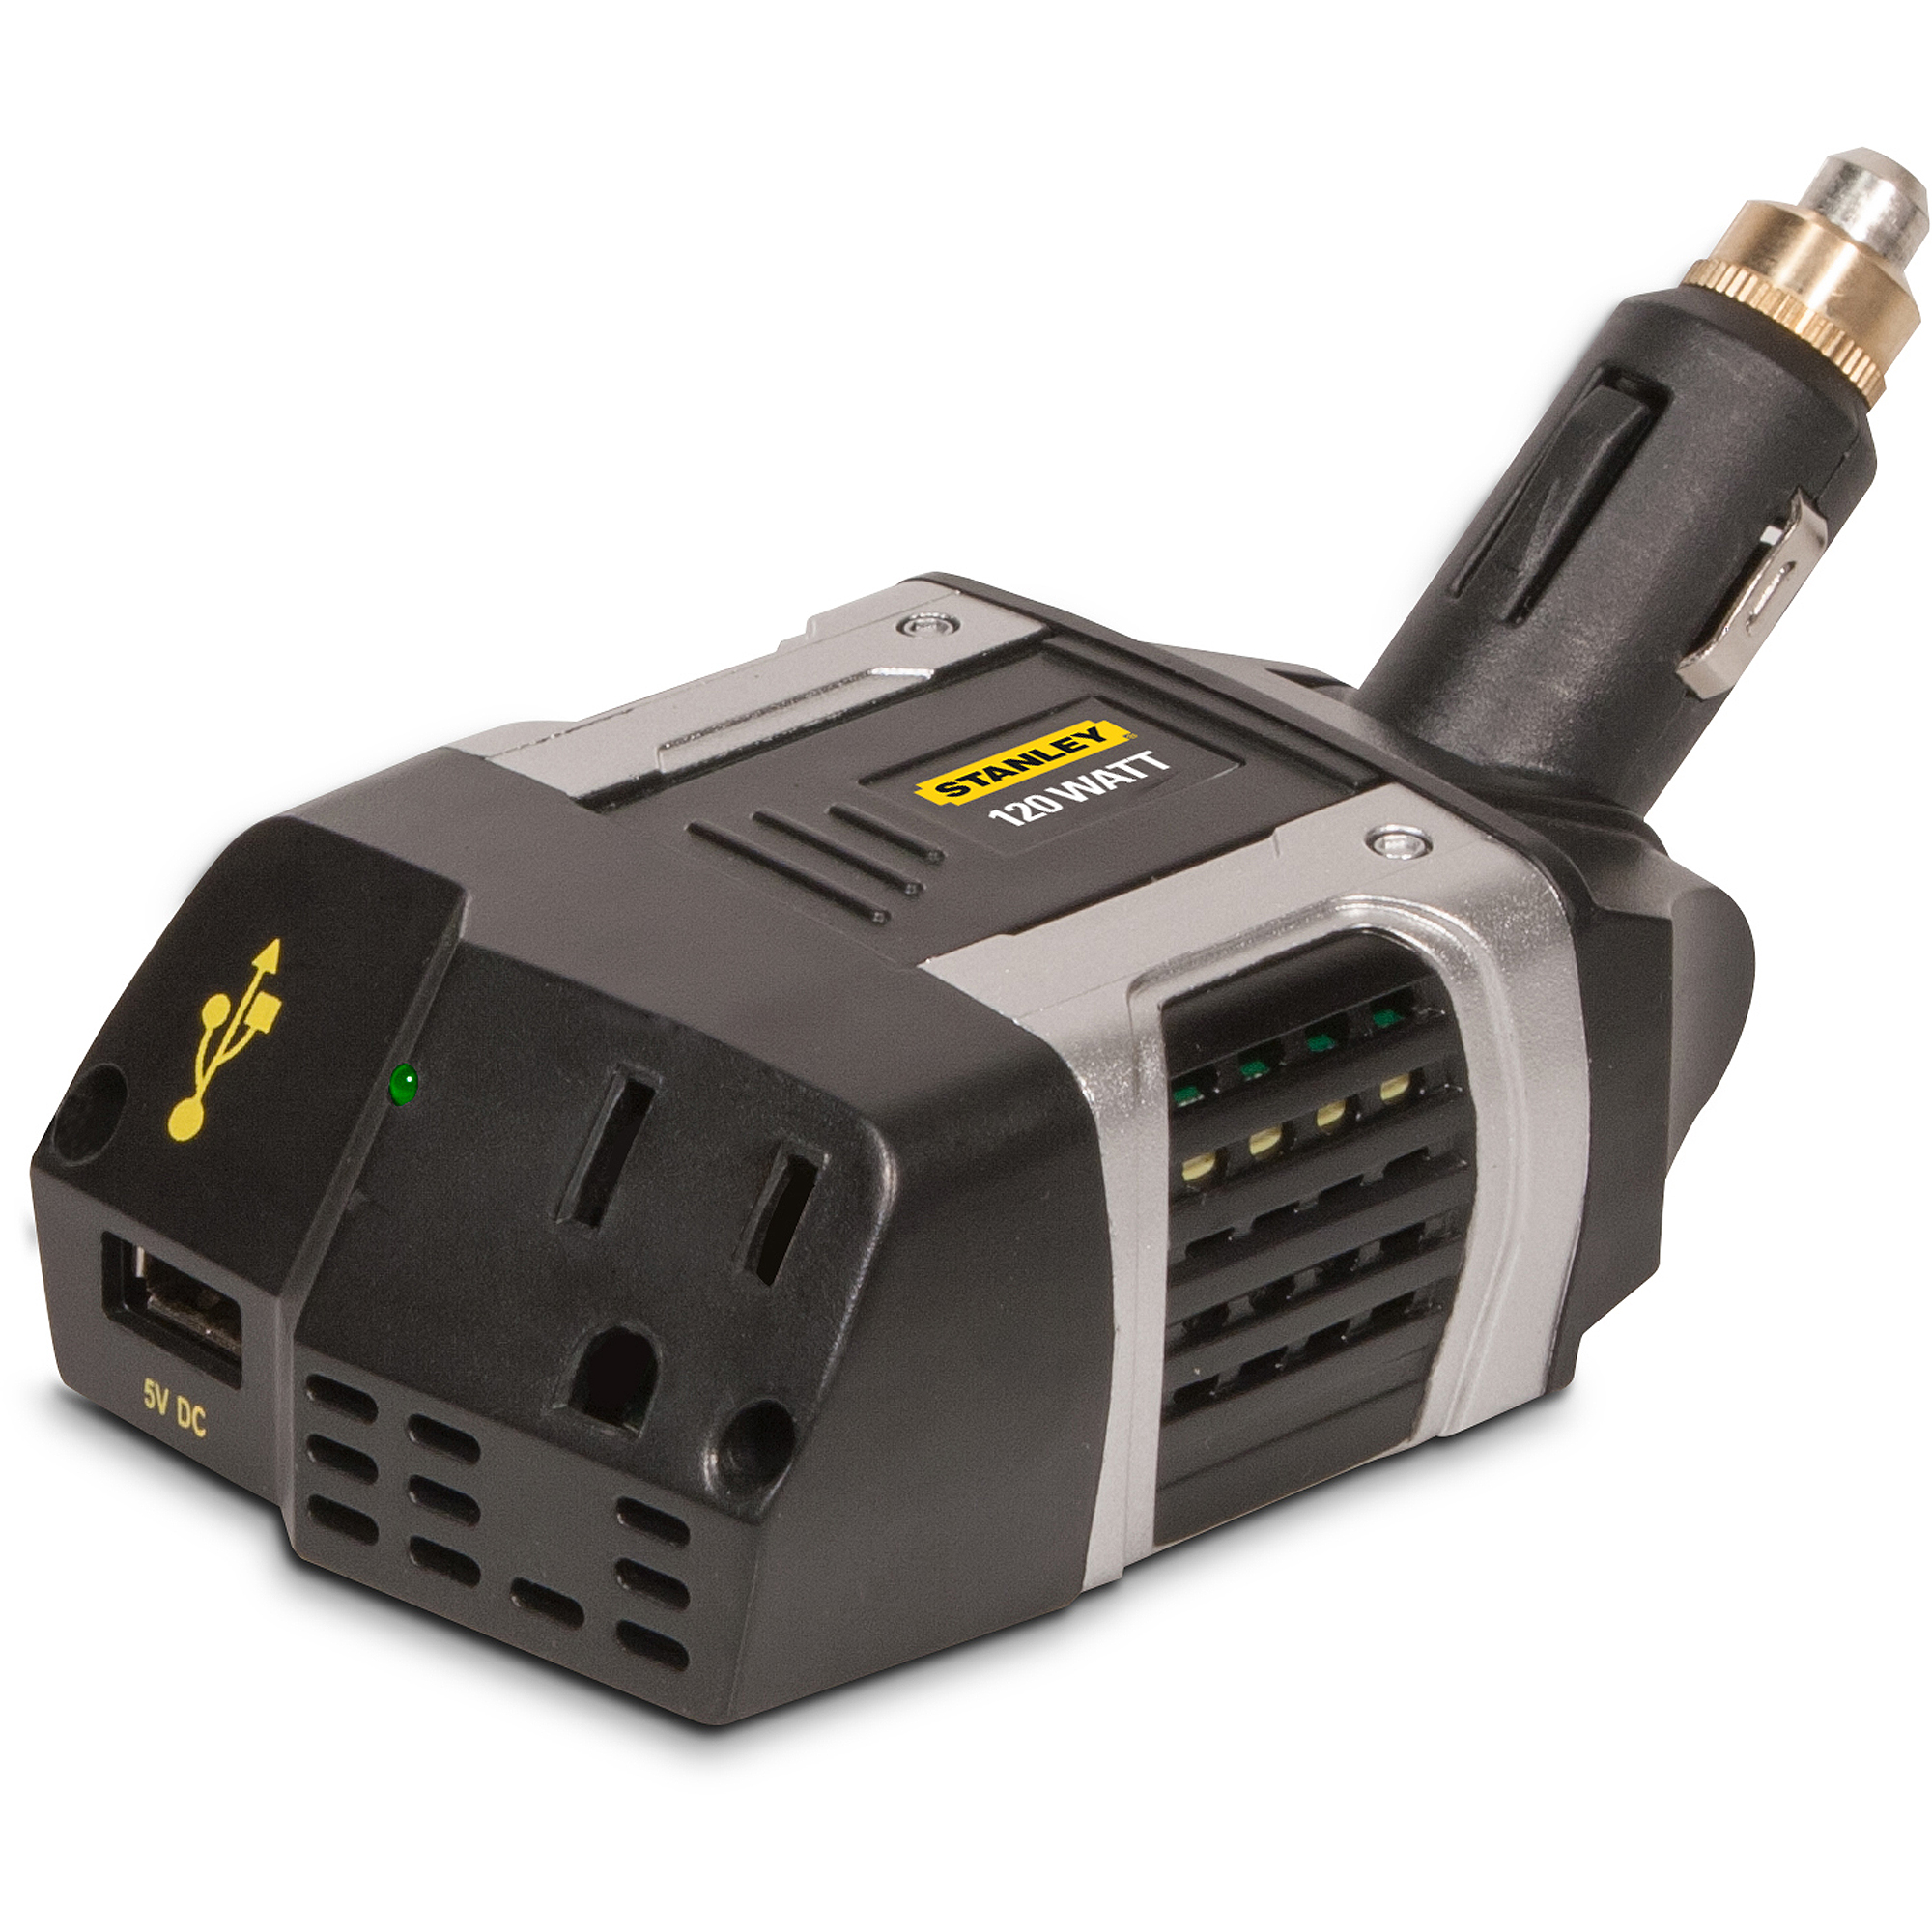 835fc326 7250 47a2 90eb 53d7c41043b0_1.84d9009deeb74b5a7393a2bd48b67382 power inverters walmart com  at alyssarenee.co